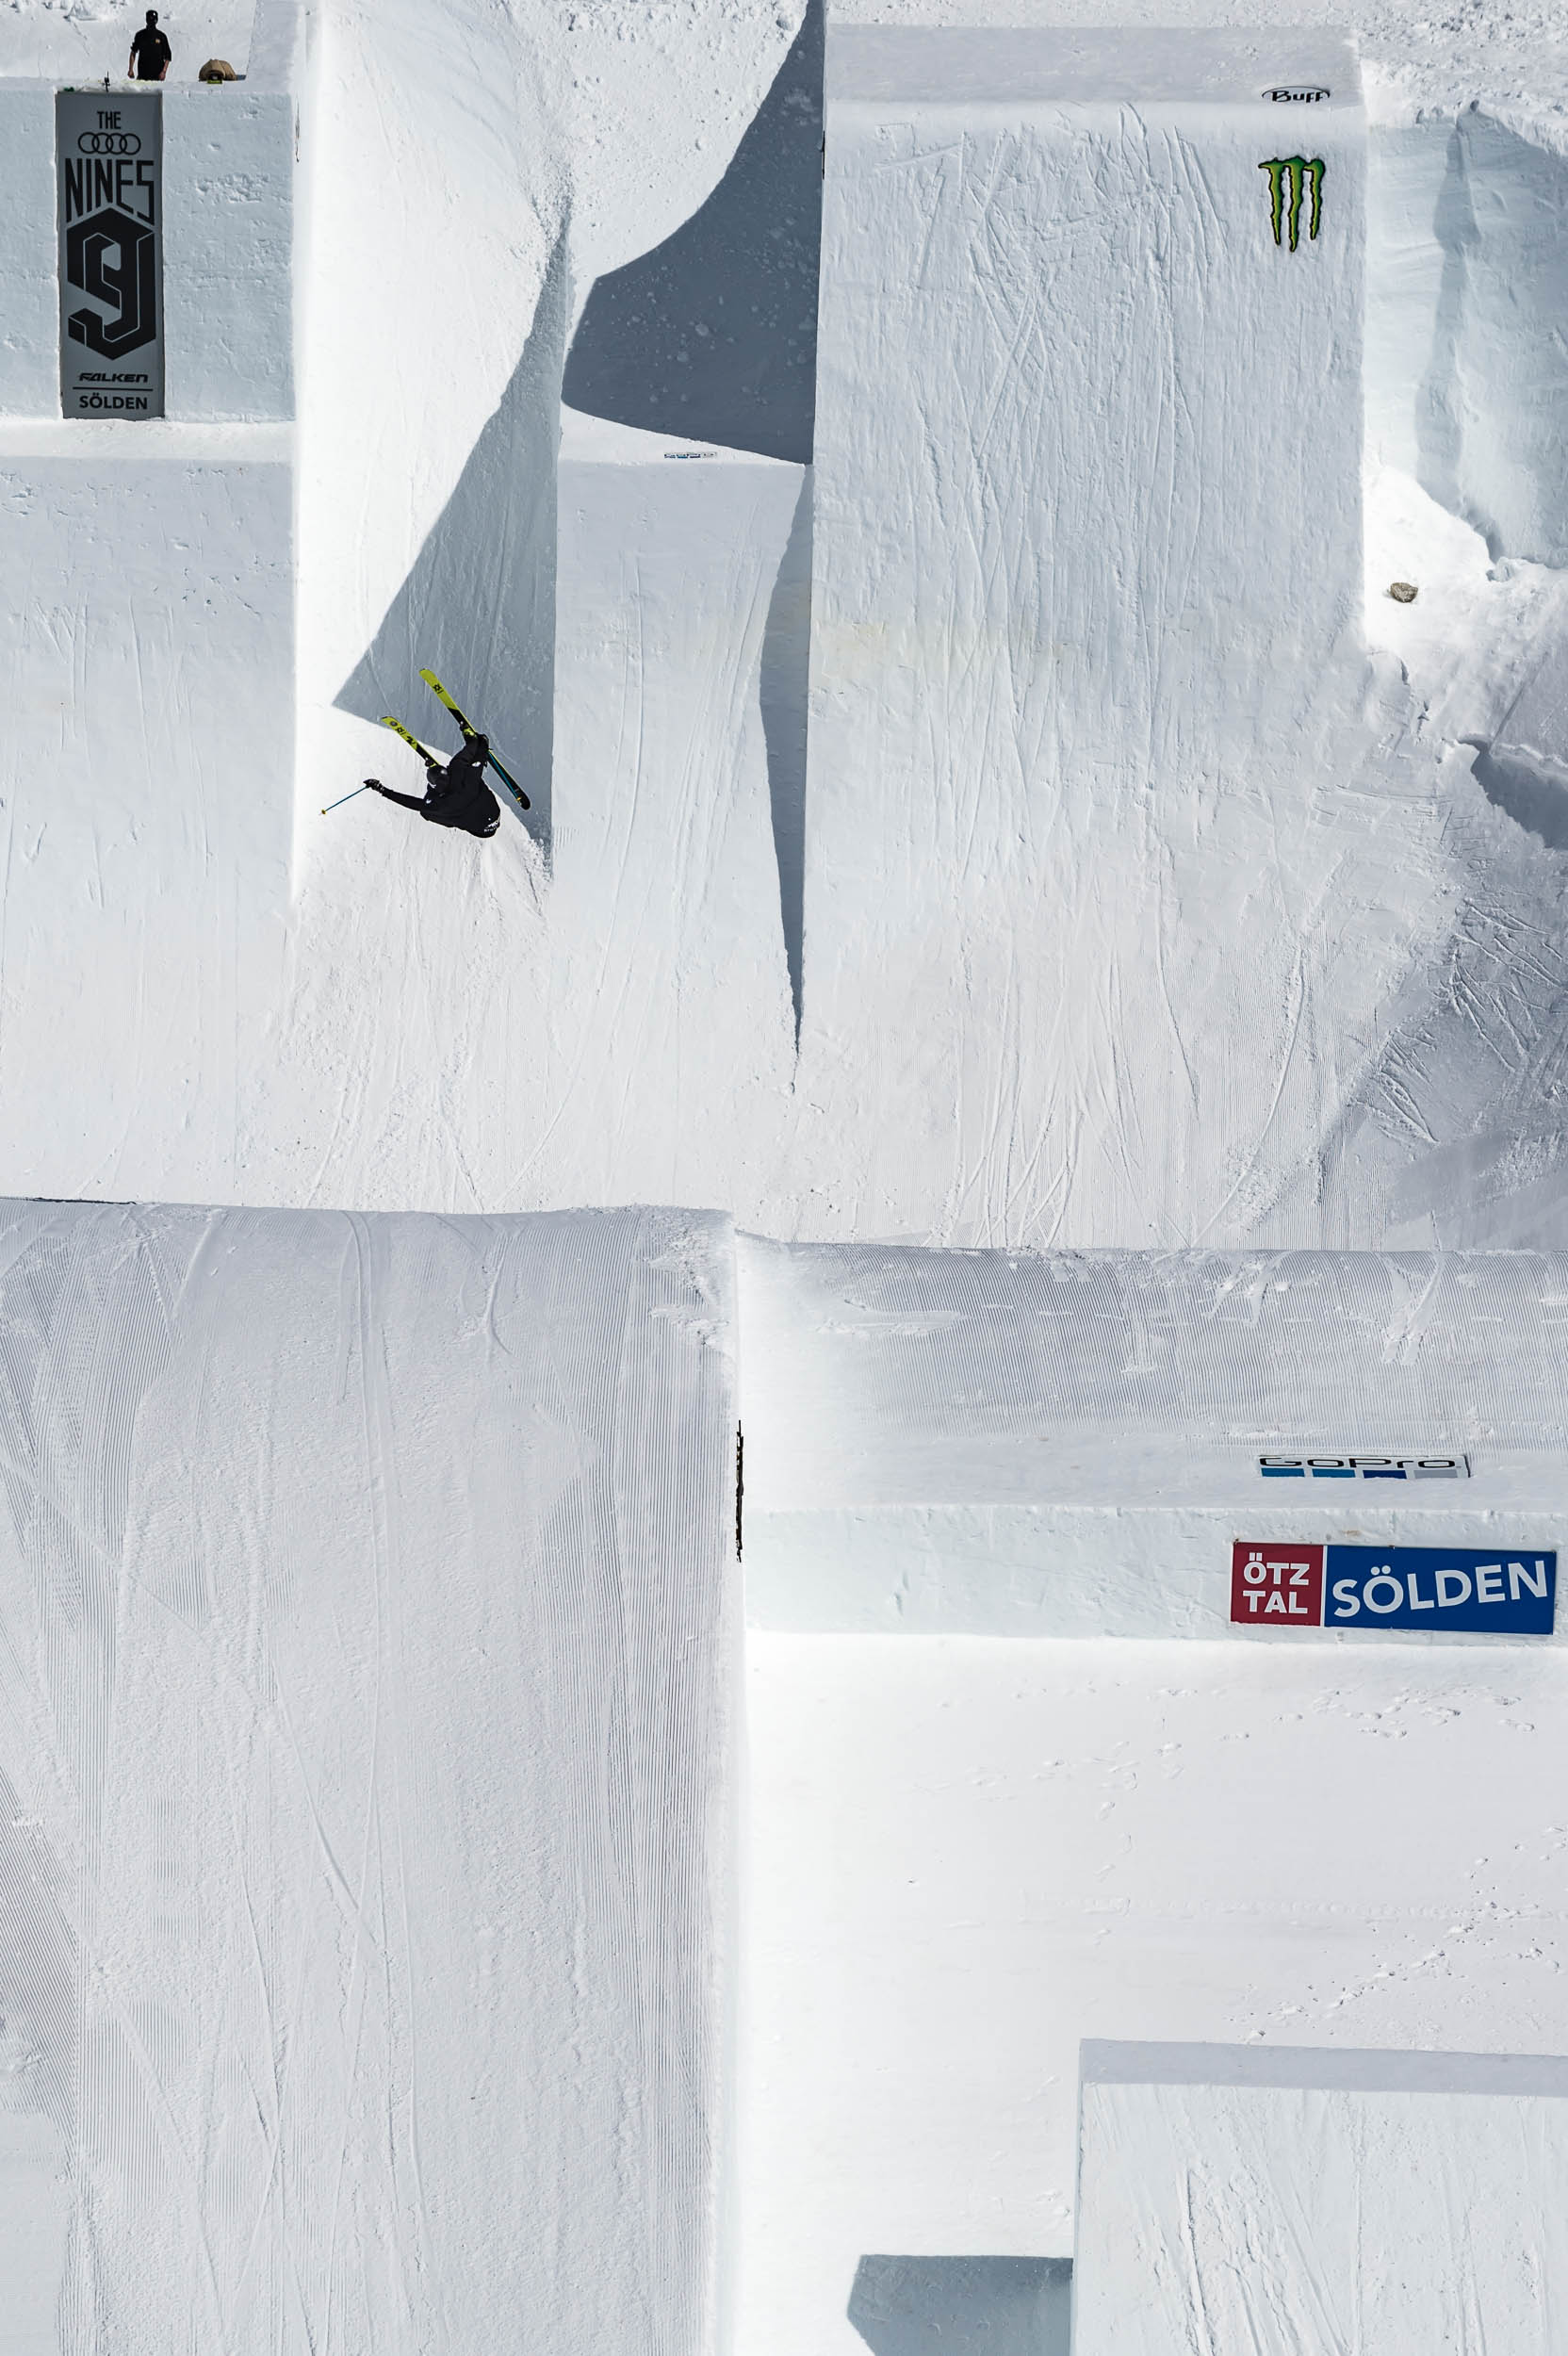 Andri Ragettli winning the Skier Big air at the 2018 Audi Nines